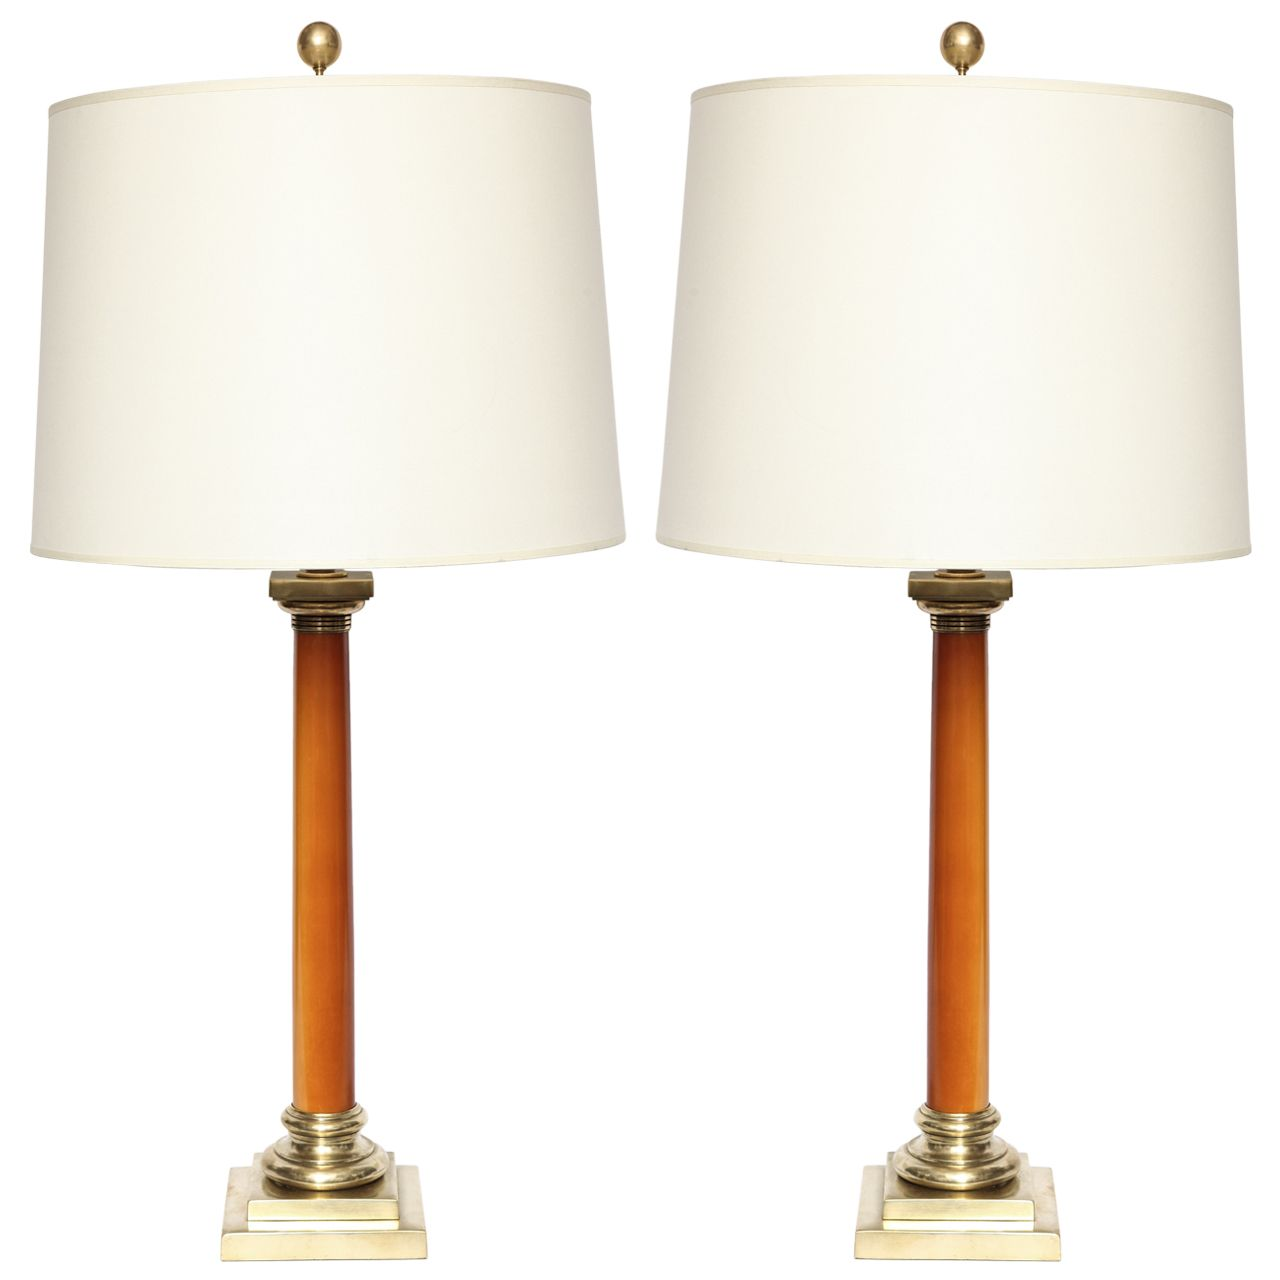 A Pair Of 1930 S Classical Modern Art Deco Table Lamps